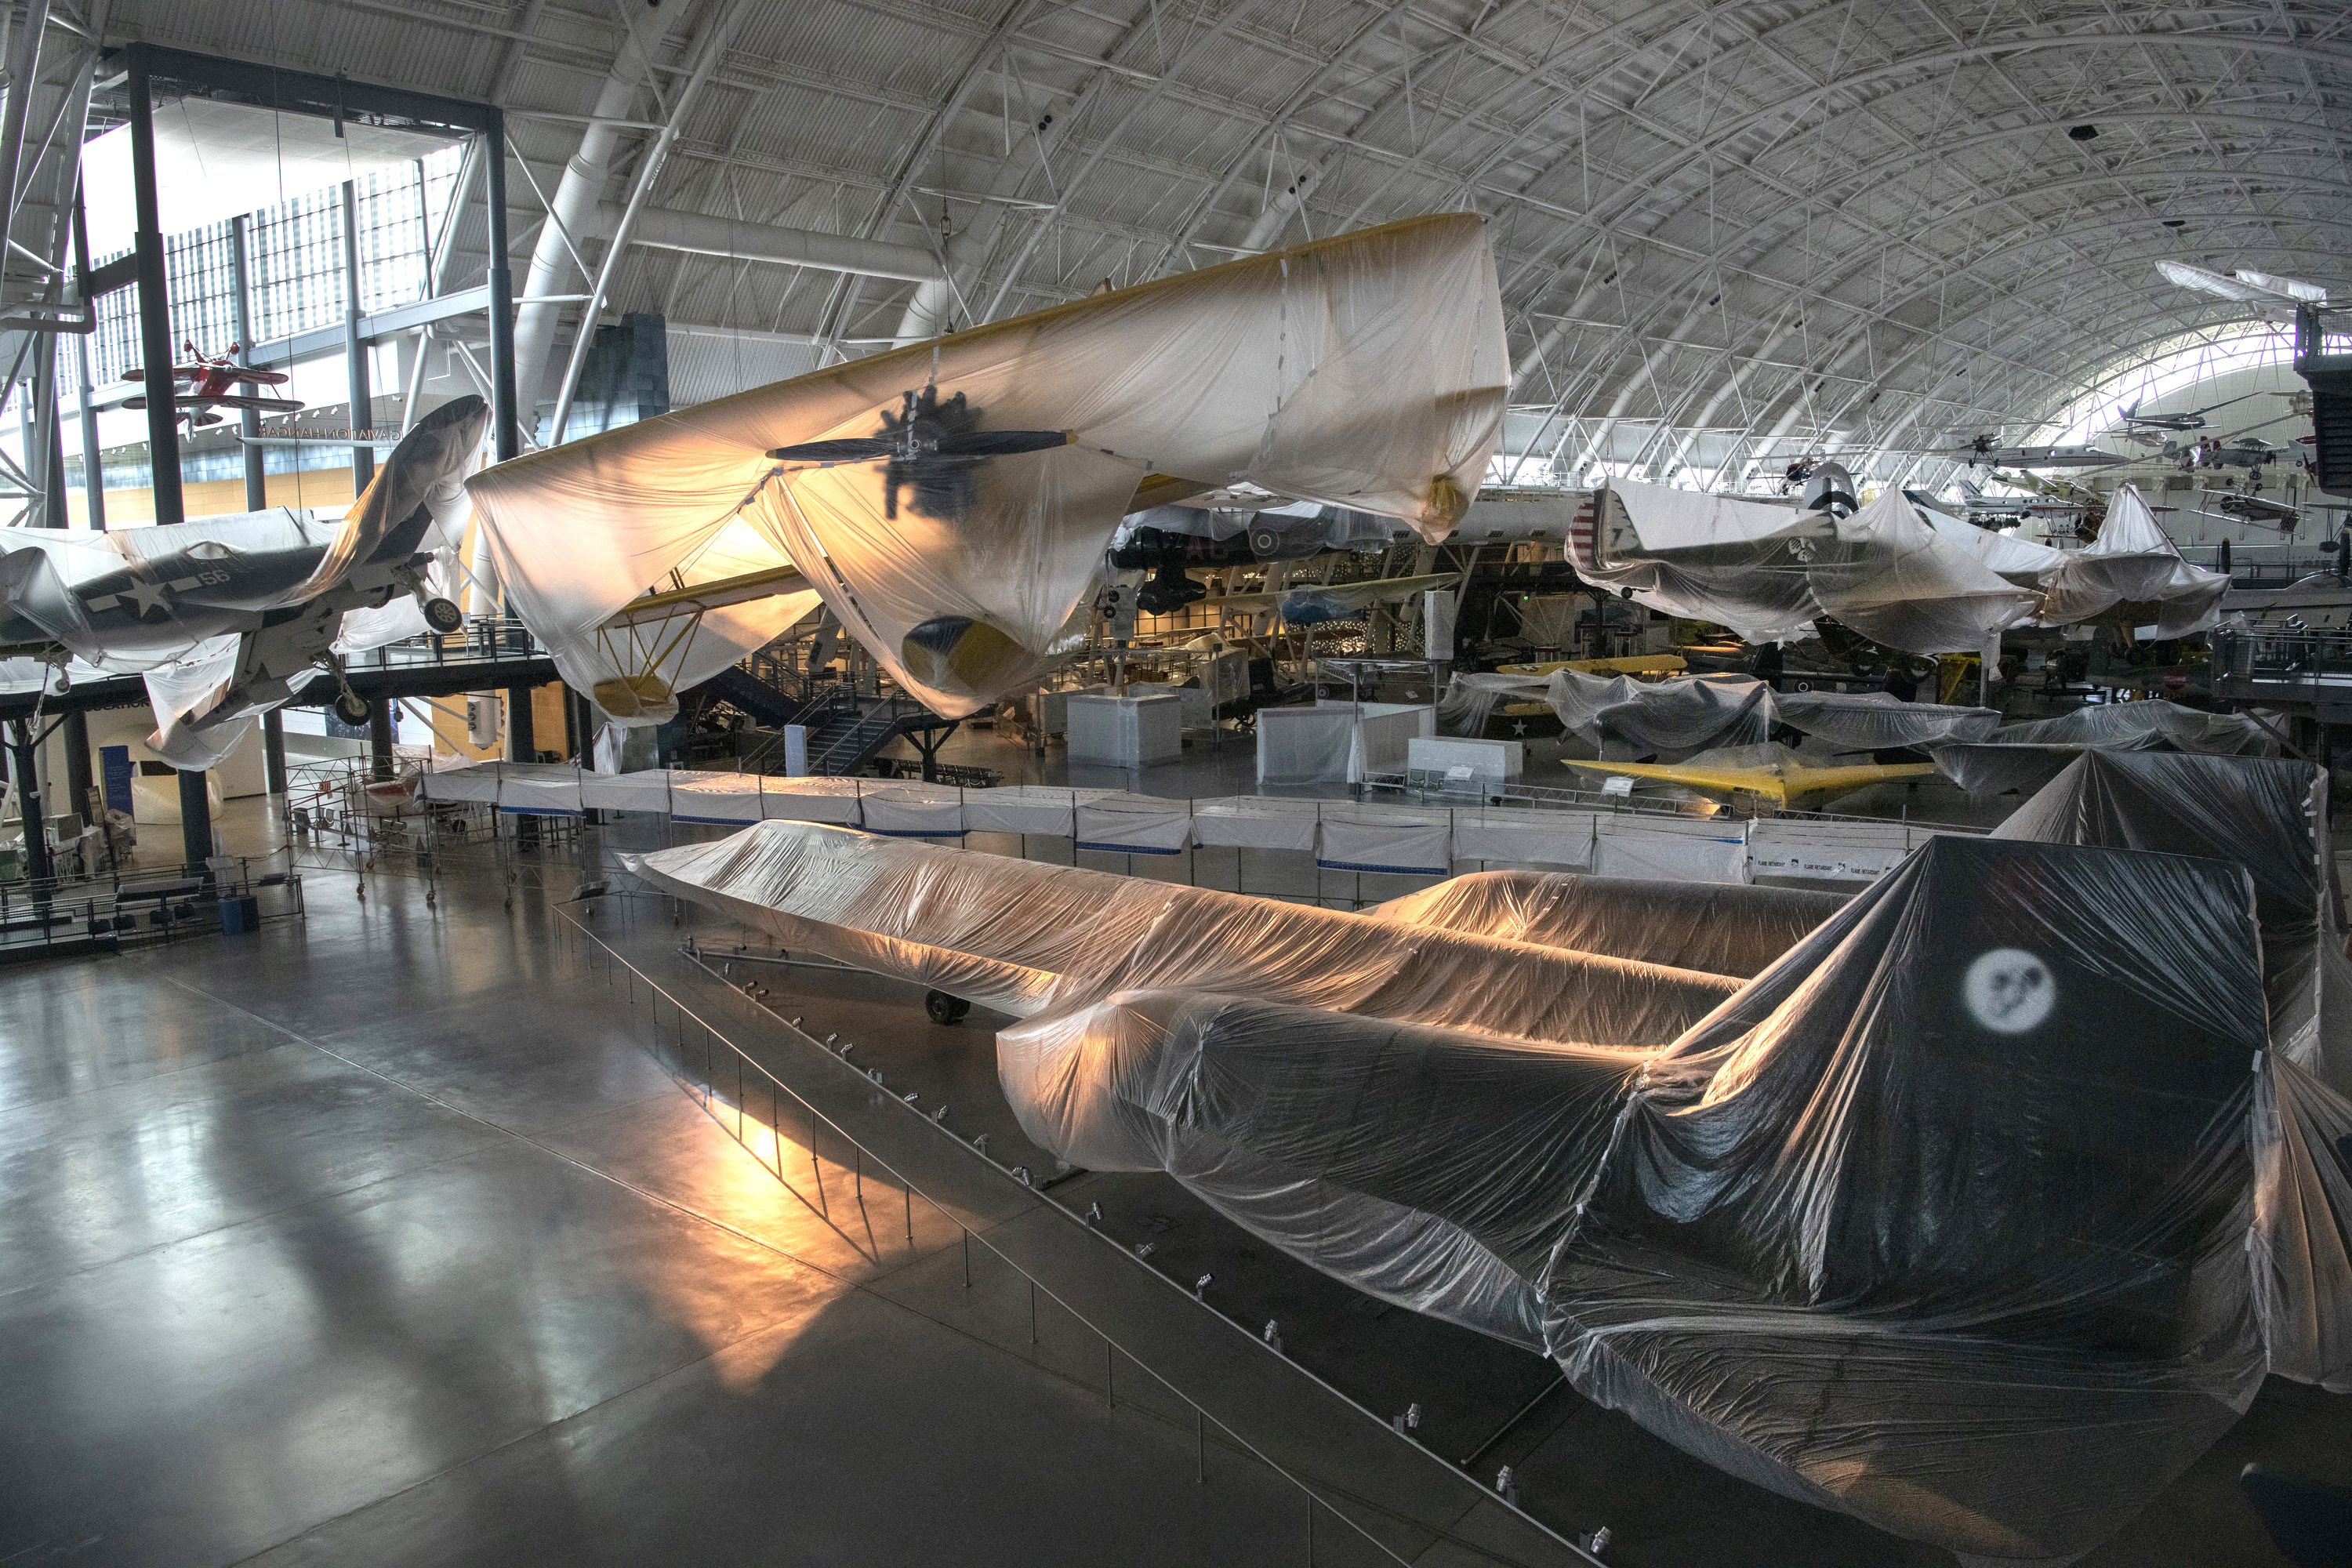 shrouded planes at Udvar-Hazy hangar